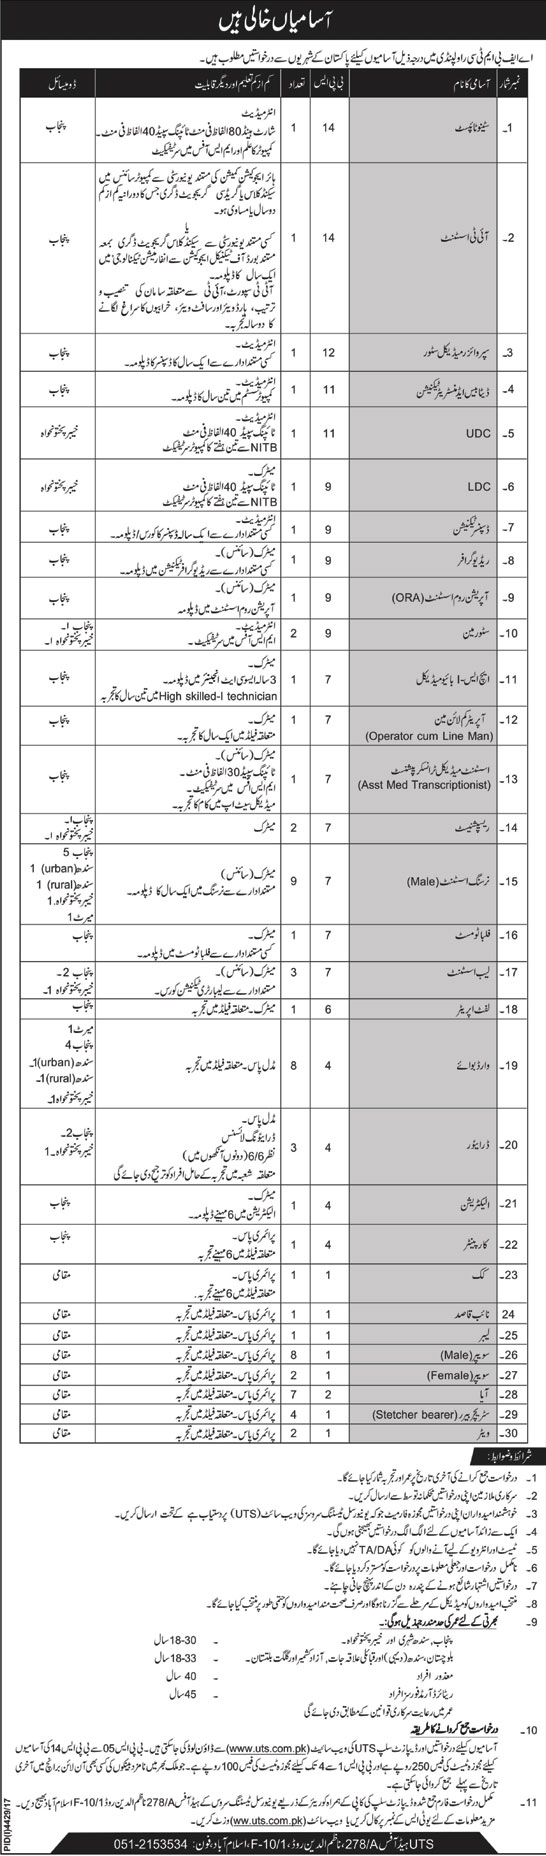 Jobs in Armed Forces Bone Marrow Transplant Centre 18 Feb 2018